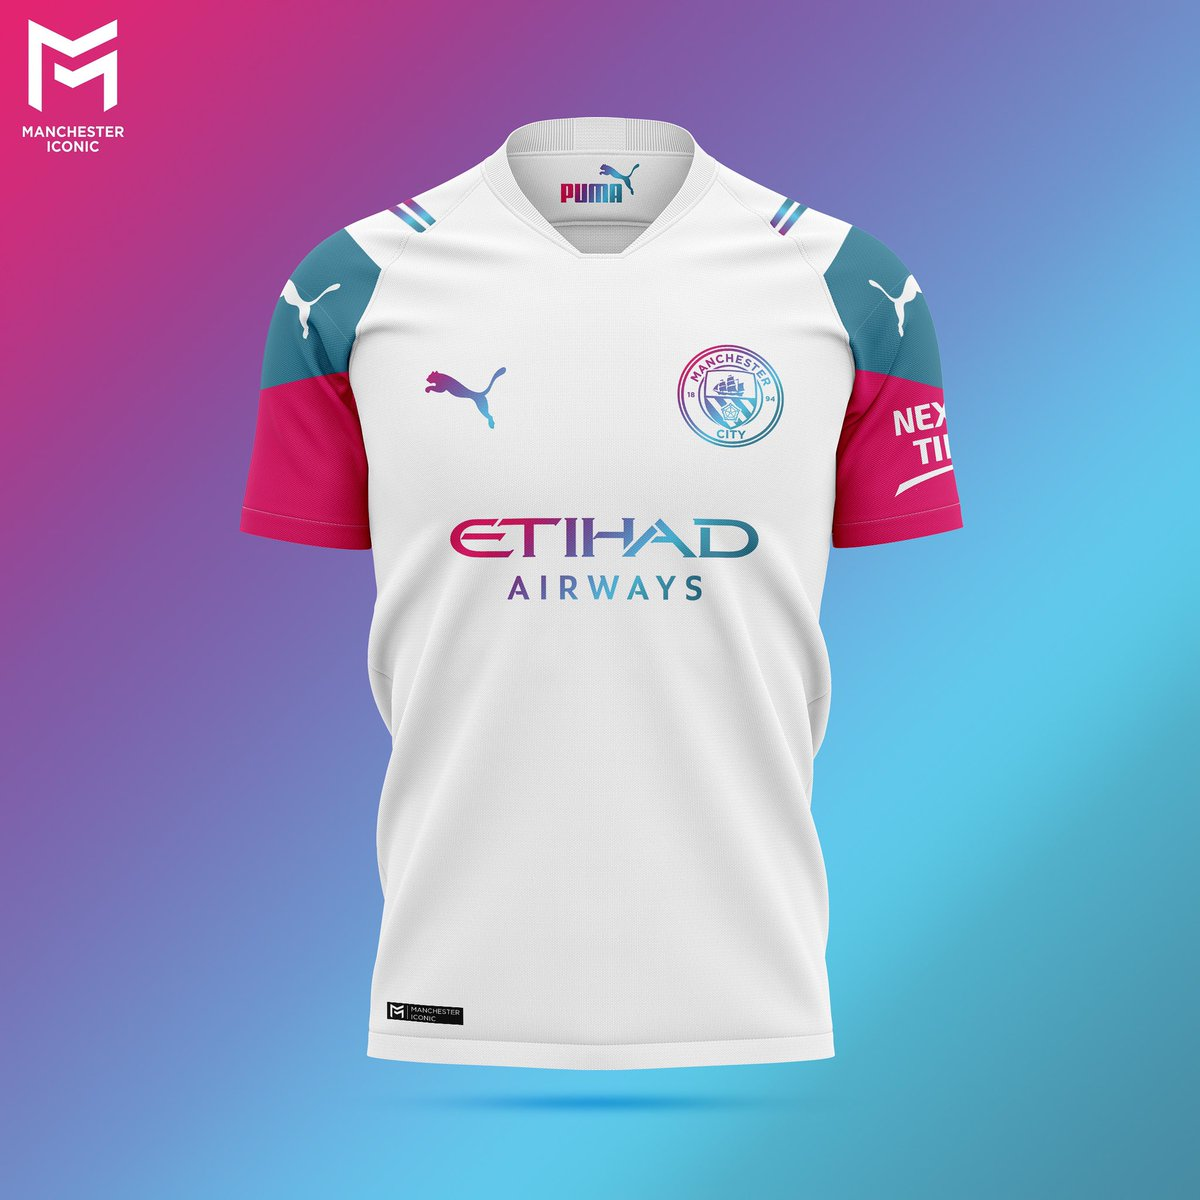 Manchestericonic On Twitter Concept This Is How The Mancity Away Kit For 2021 22 Could Look Like According To The Latest Leaks Inspired By Footy Headlines Https T Co Erqtr43rns